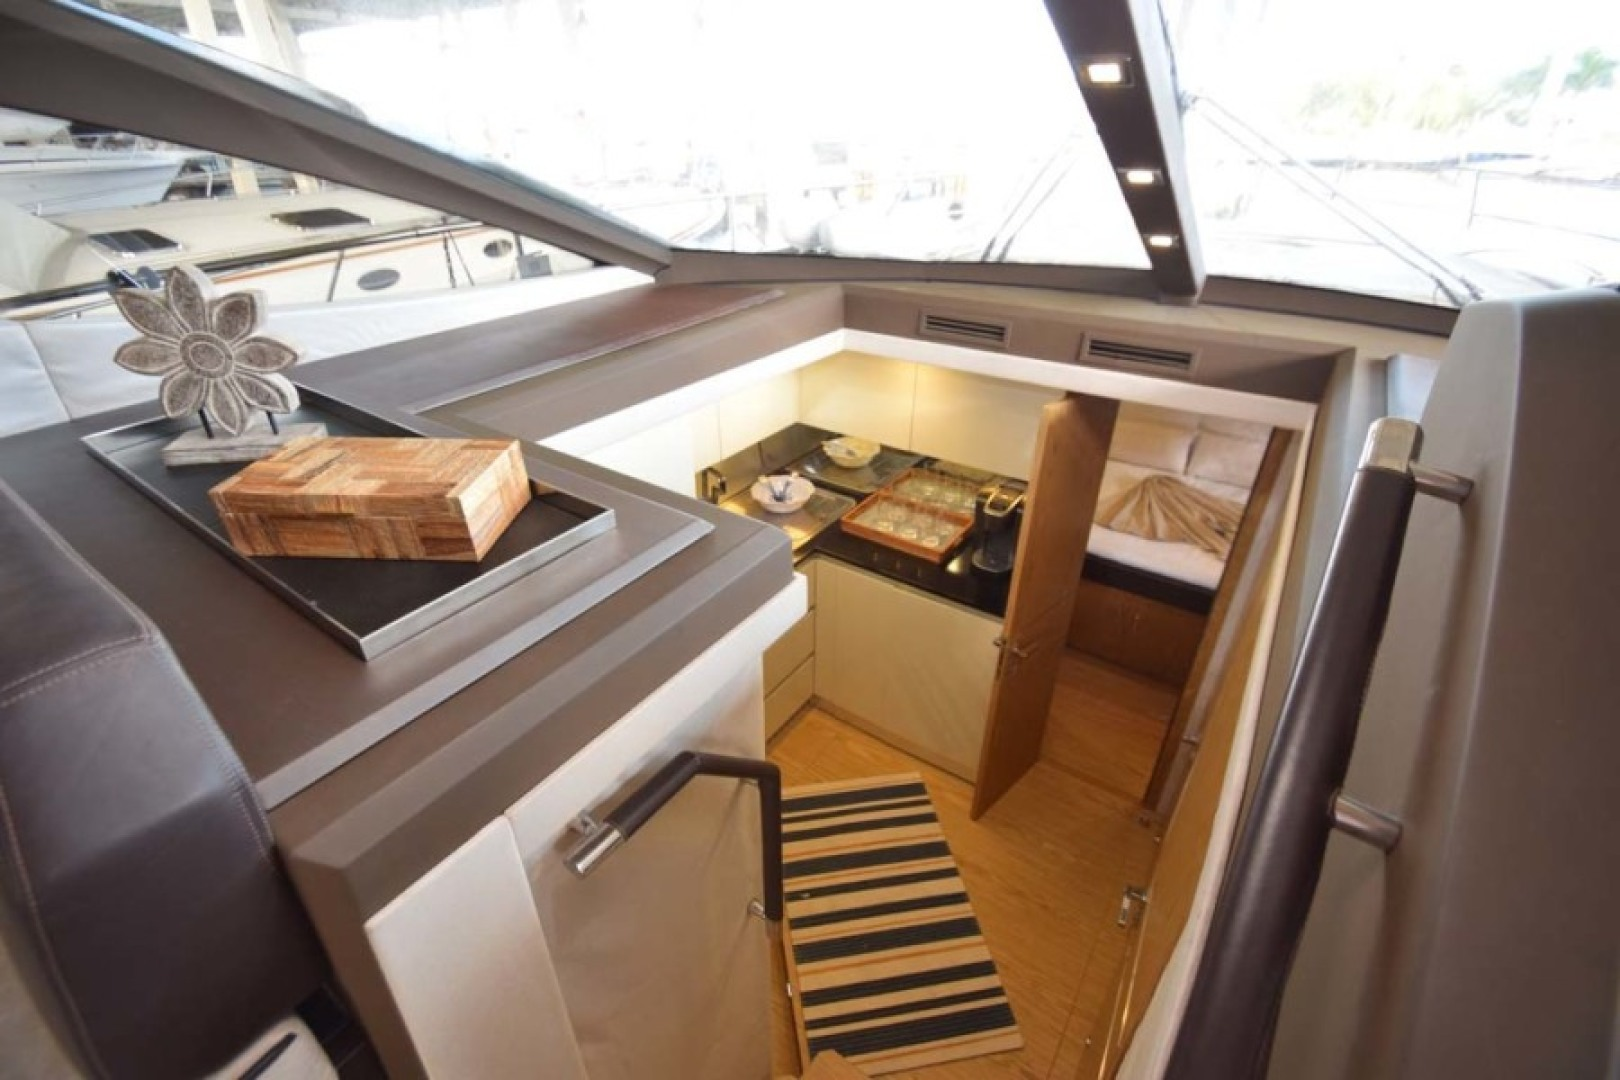 Sessa-C54 Express 2011 -Lighthouse Point-Florida-United States-Overhead View of Cabin Interior-1477098 | Thumbnail